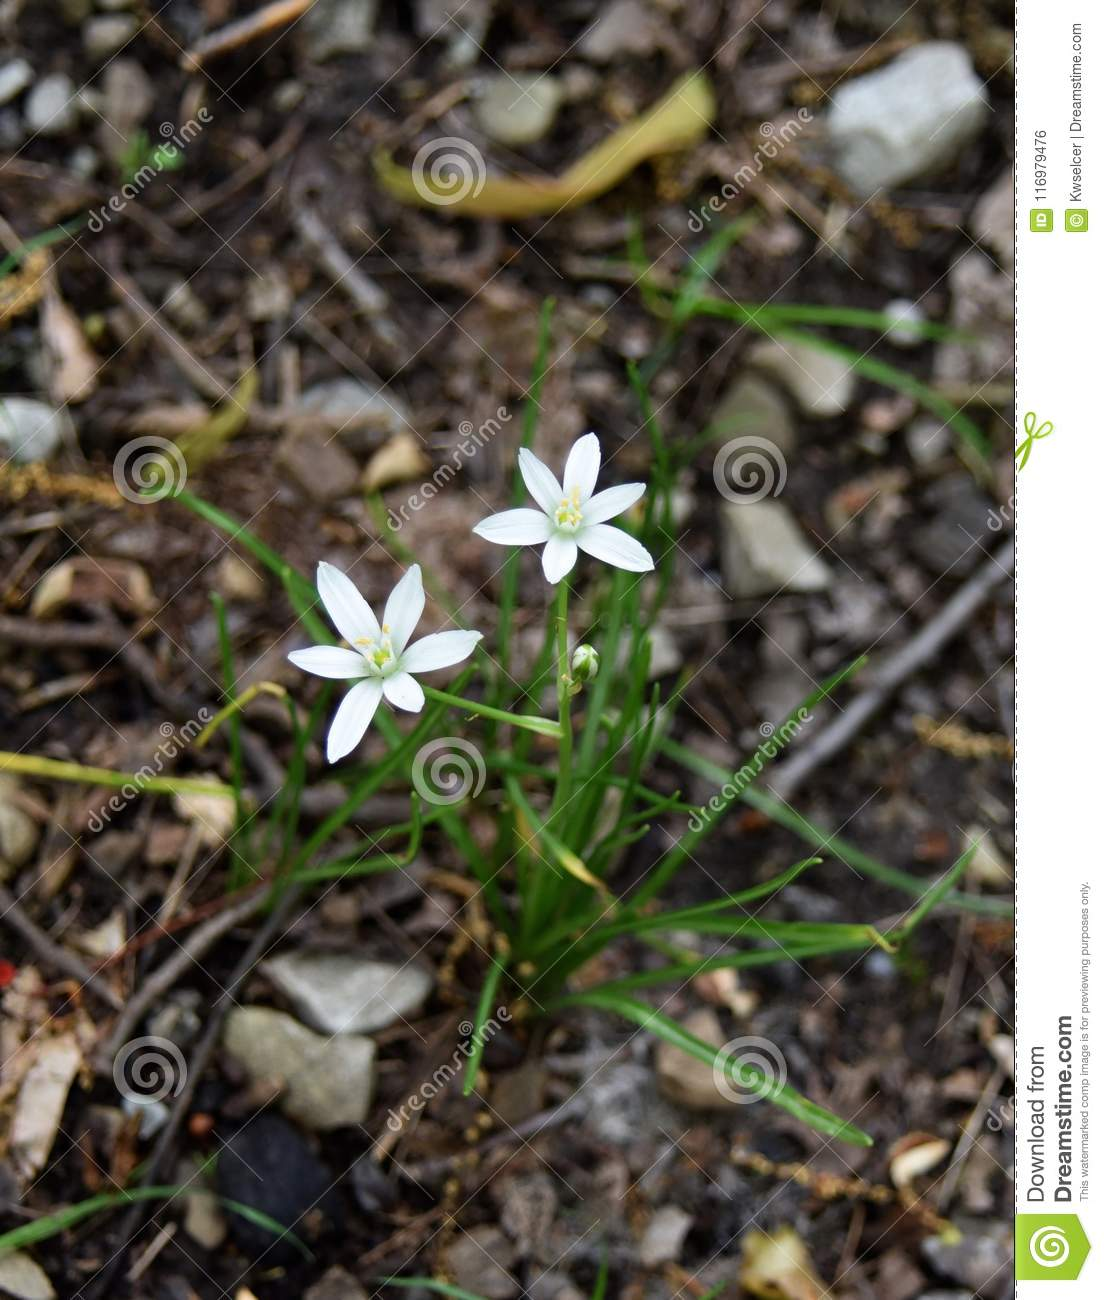 White Flowers And Green Leaves Of A Star Of Bethlehem Plant In A